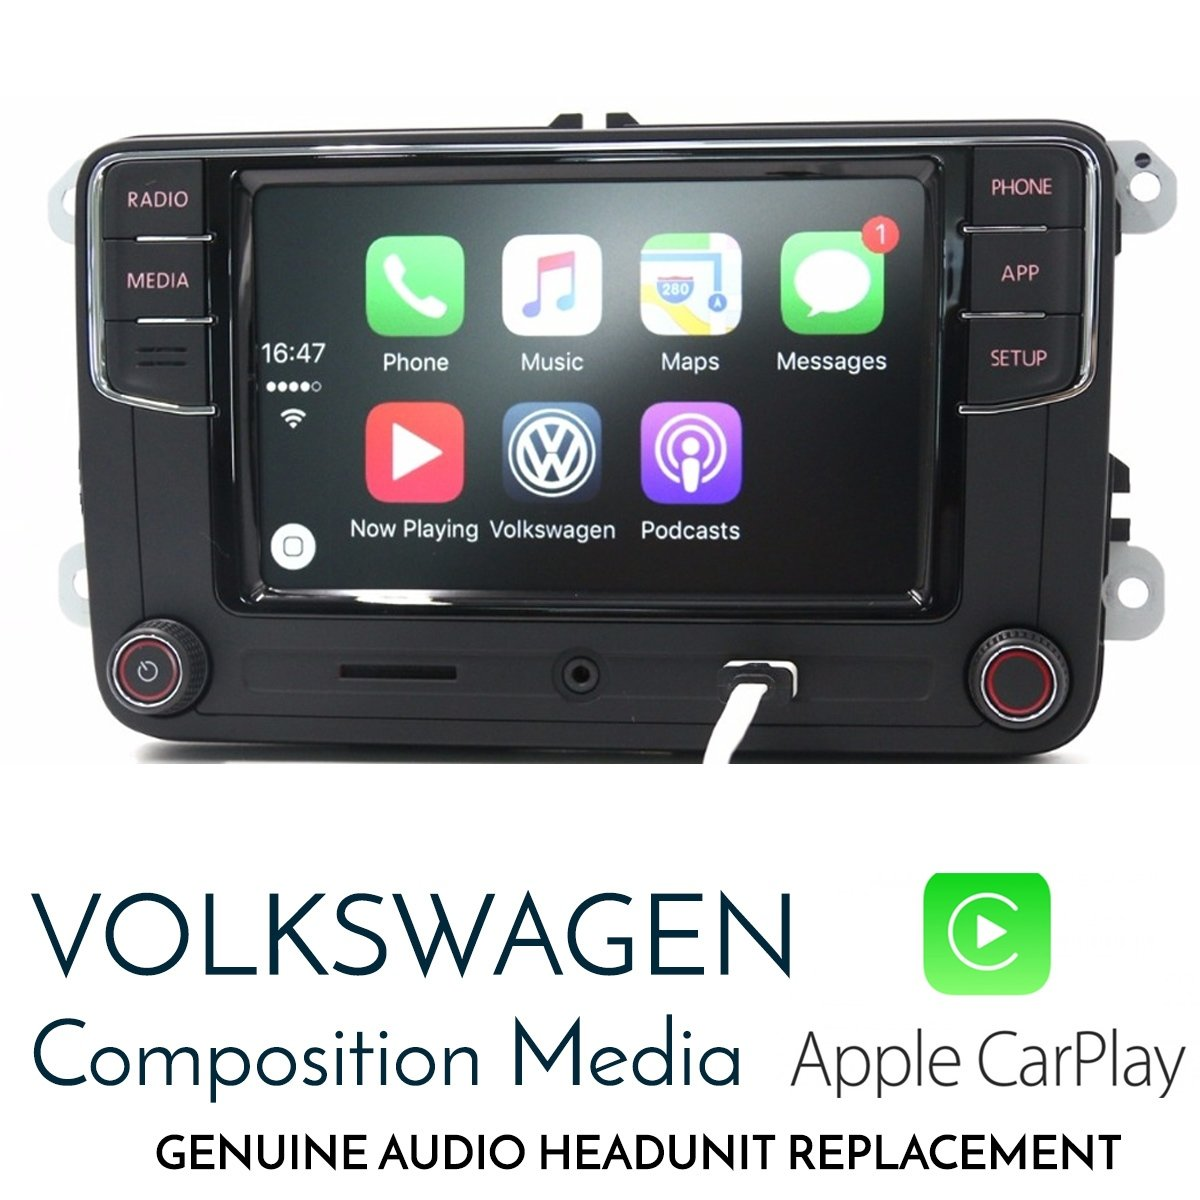 Volkswagen OEM RCD330 - Apple Carplay integrated replacement headunit